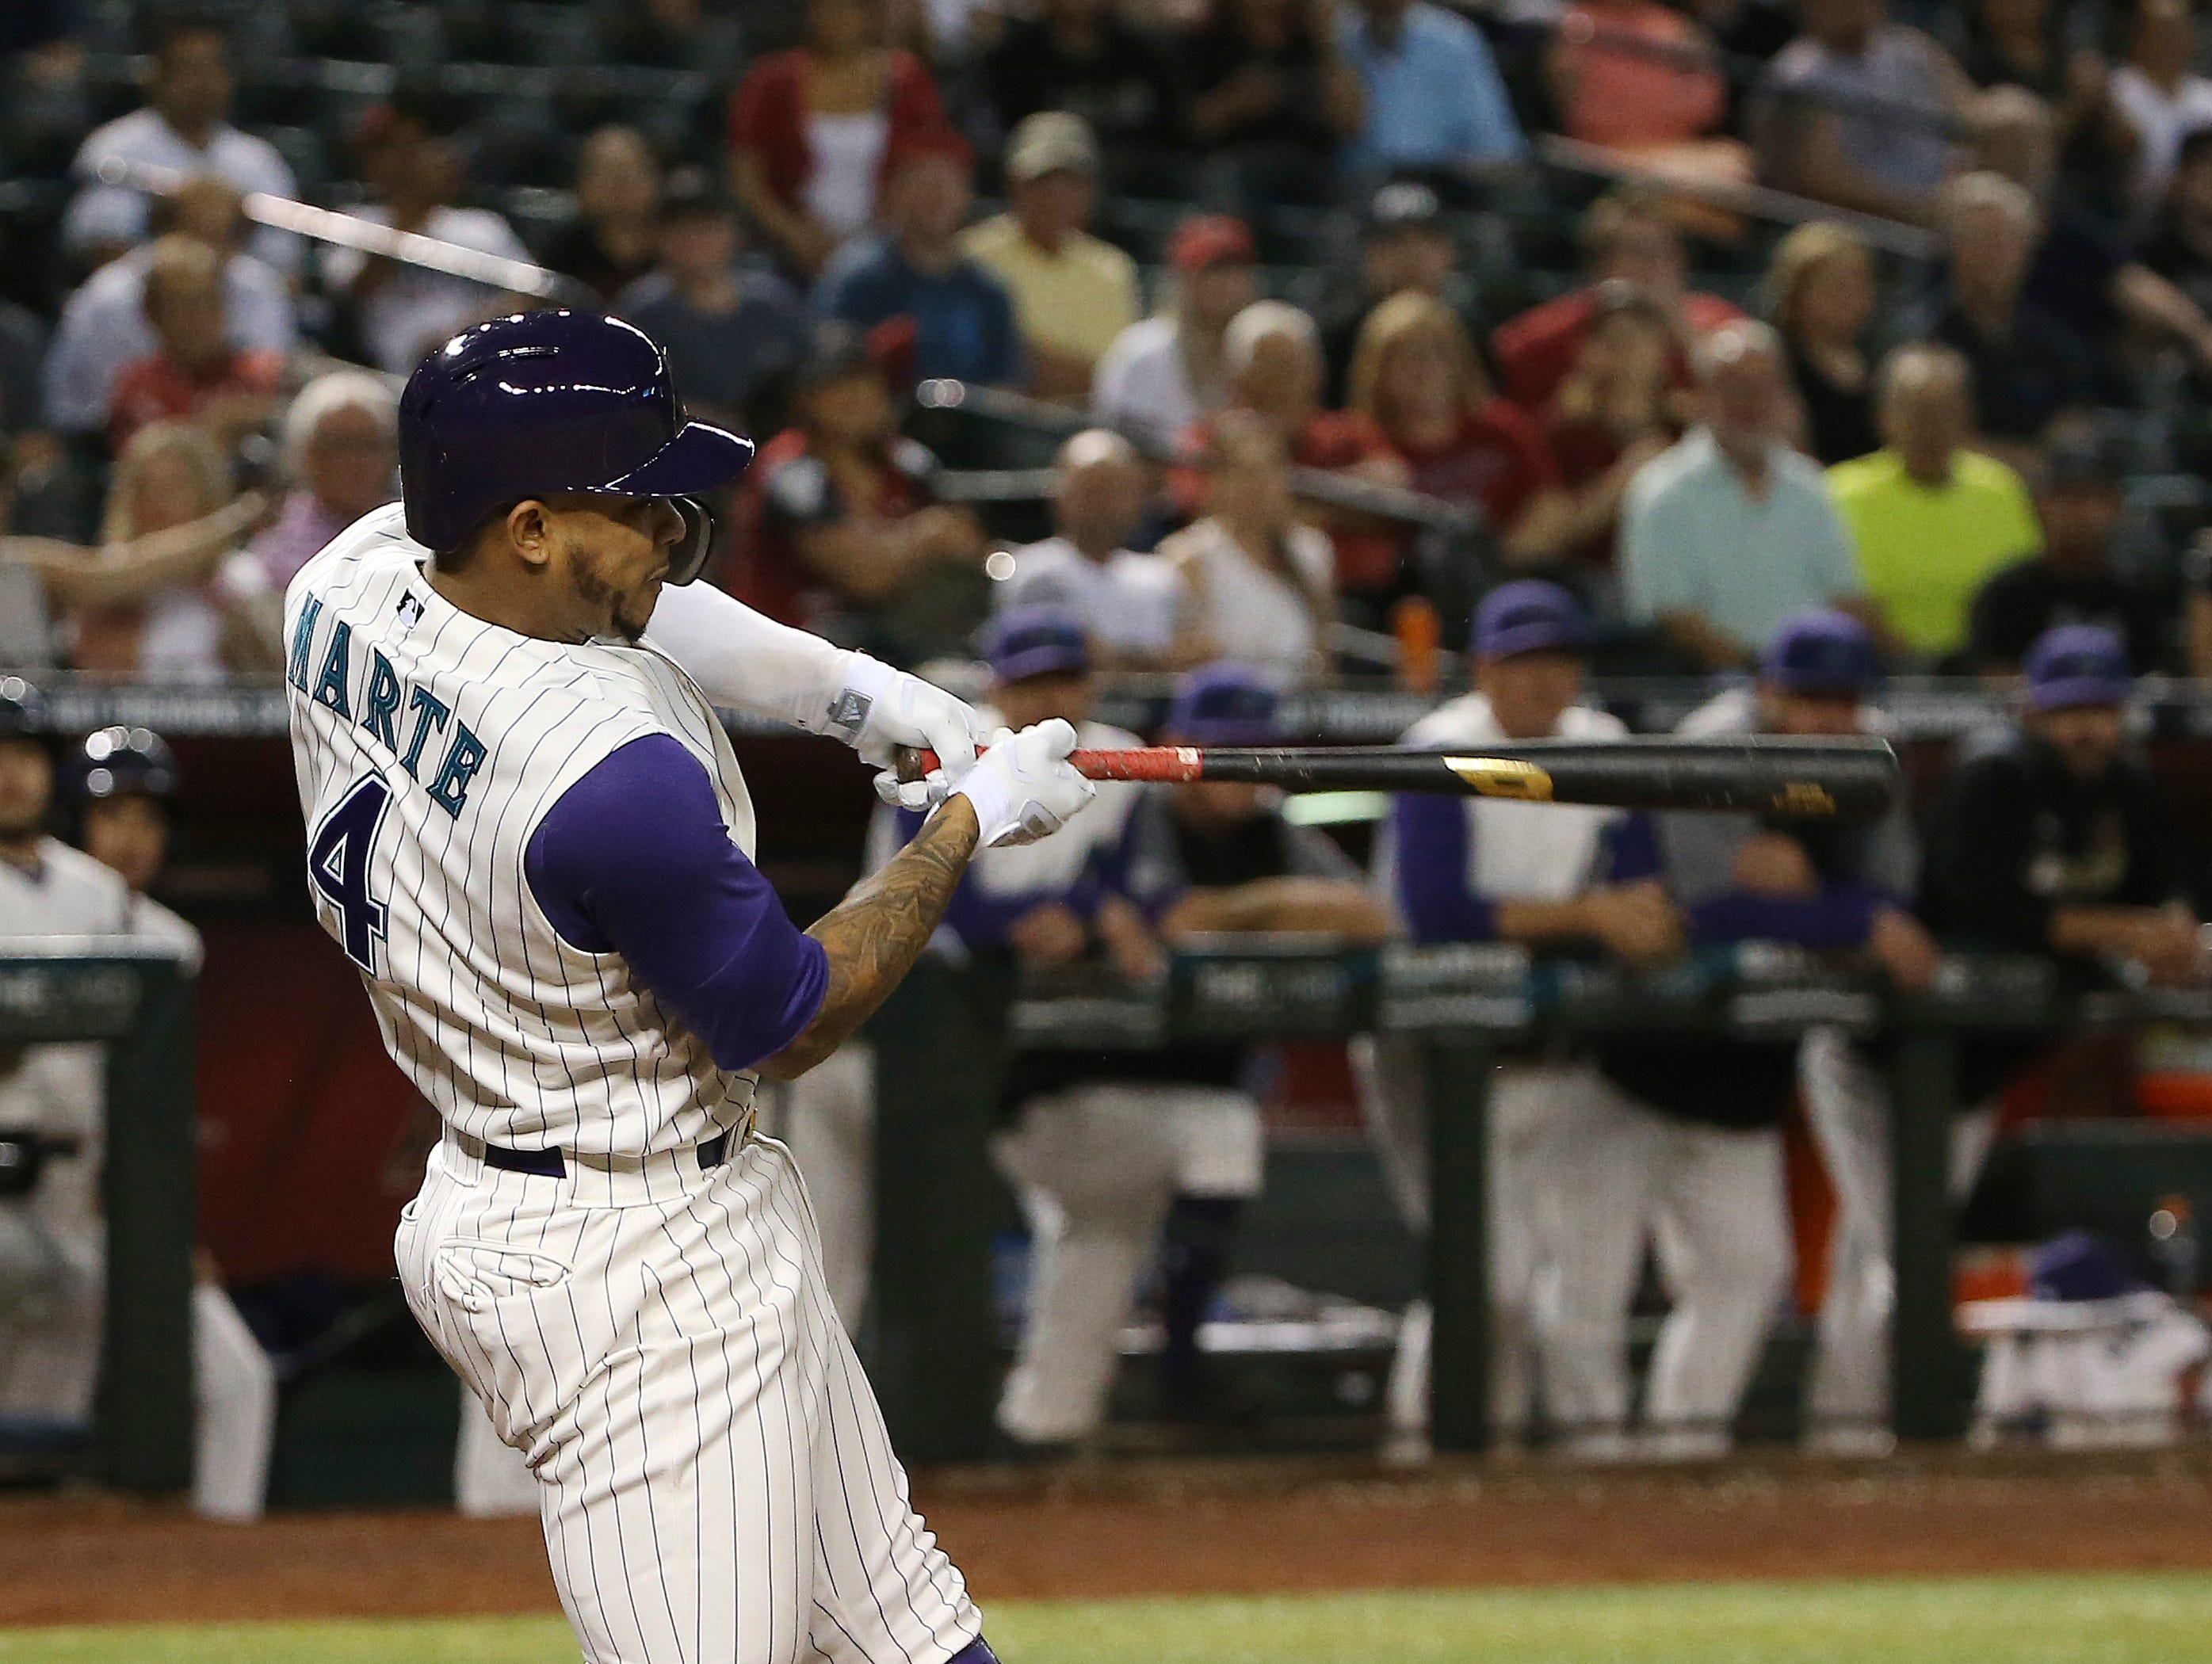 Arizona Diamondbacks' Ketel Marte hits a single to drive in the winning run against the Arizona Diamondbacks during the 10th inning of a baseball game Thursday, May 9, 2019, in Phoenix. The Diamondbacks won 3-2. (AP Photo/Ross D. Franklin)